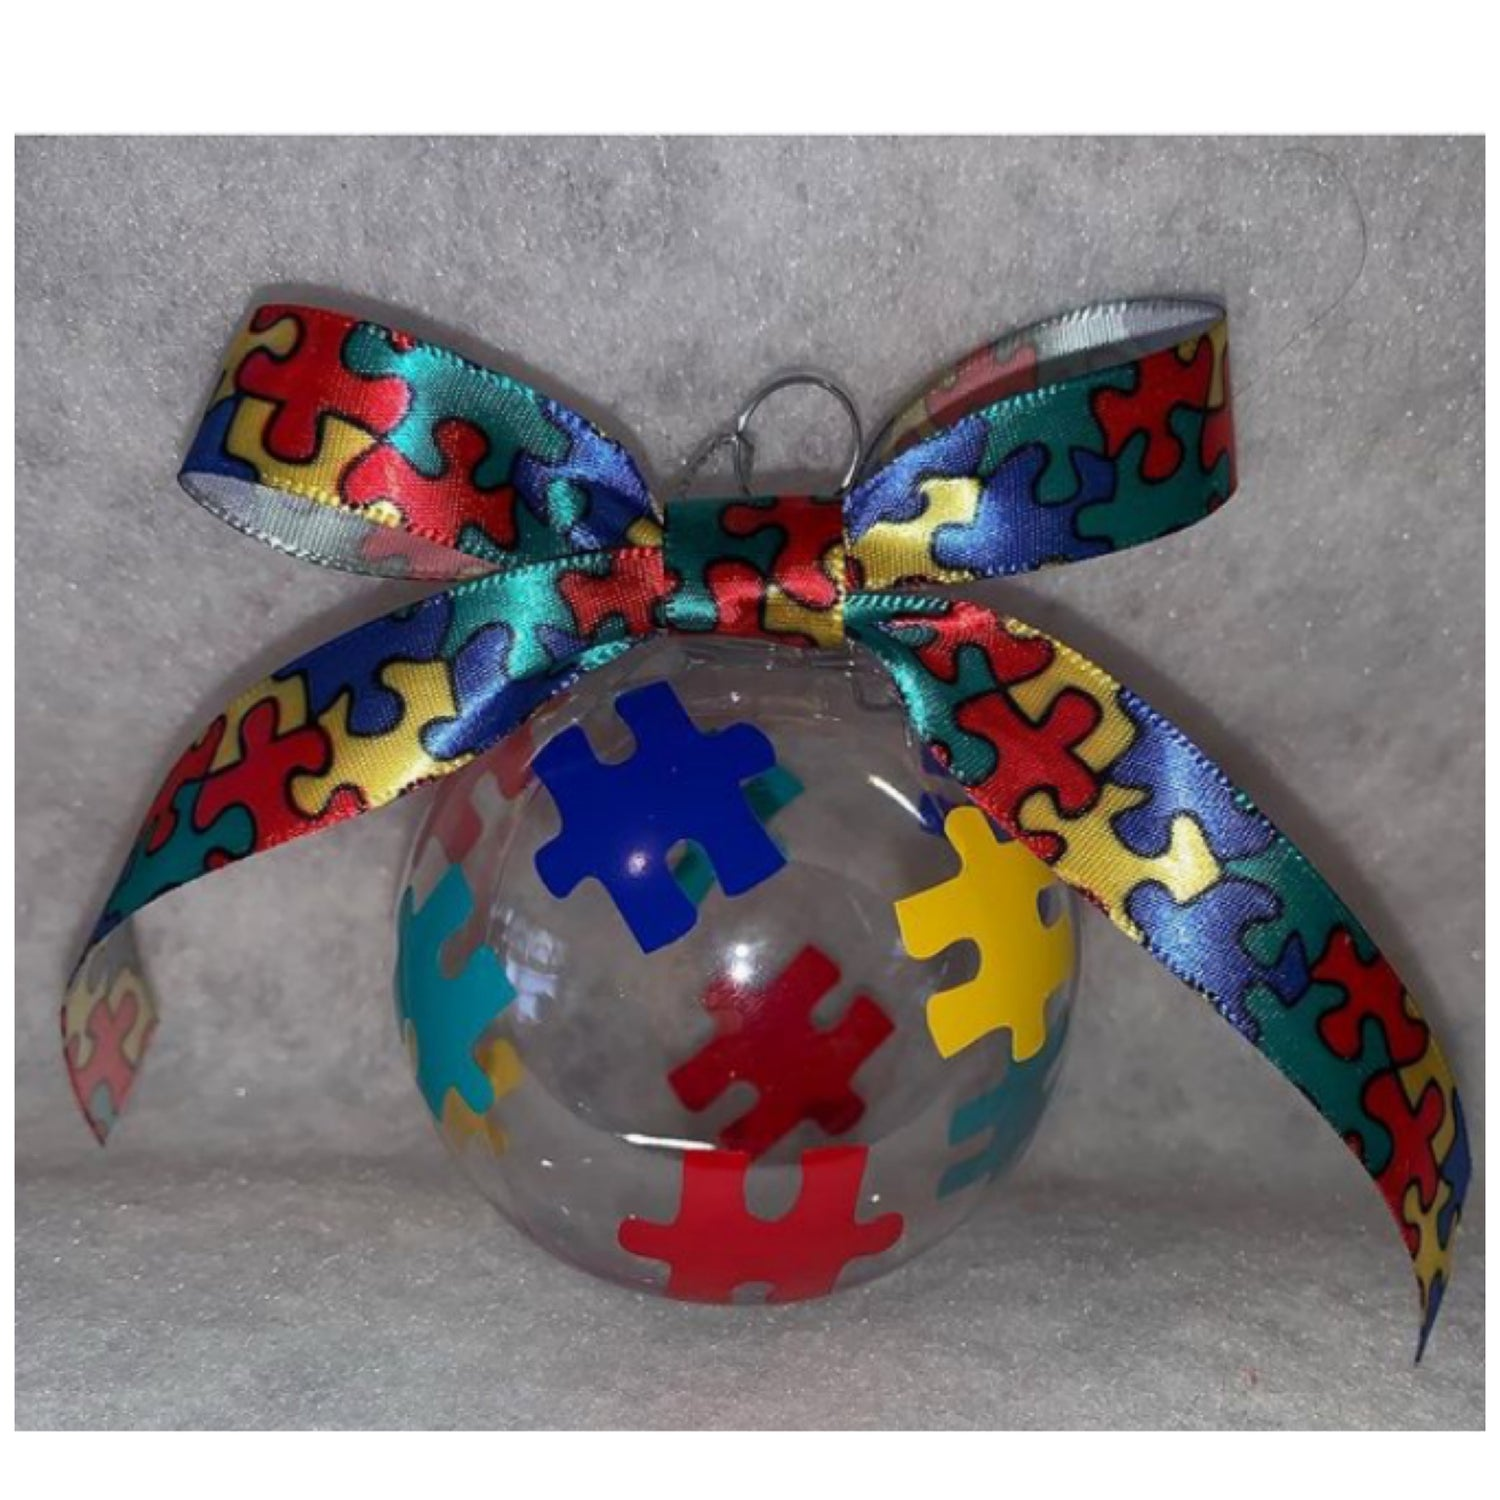 Image of The Autism Awareness Ornament